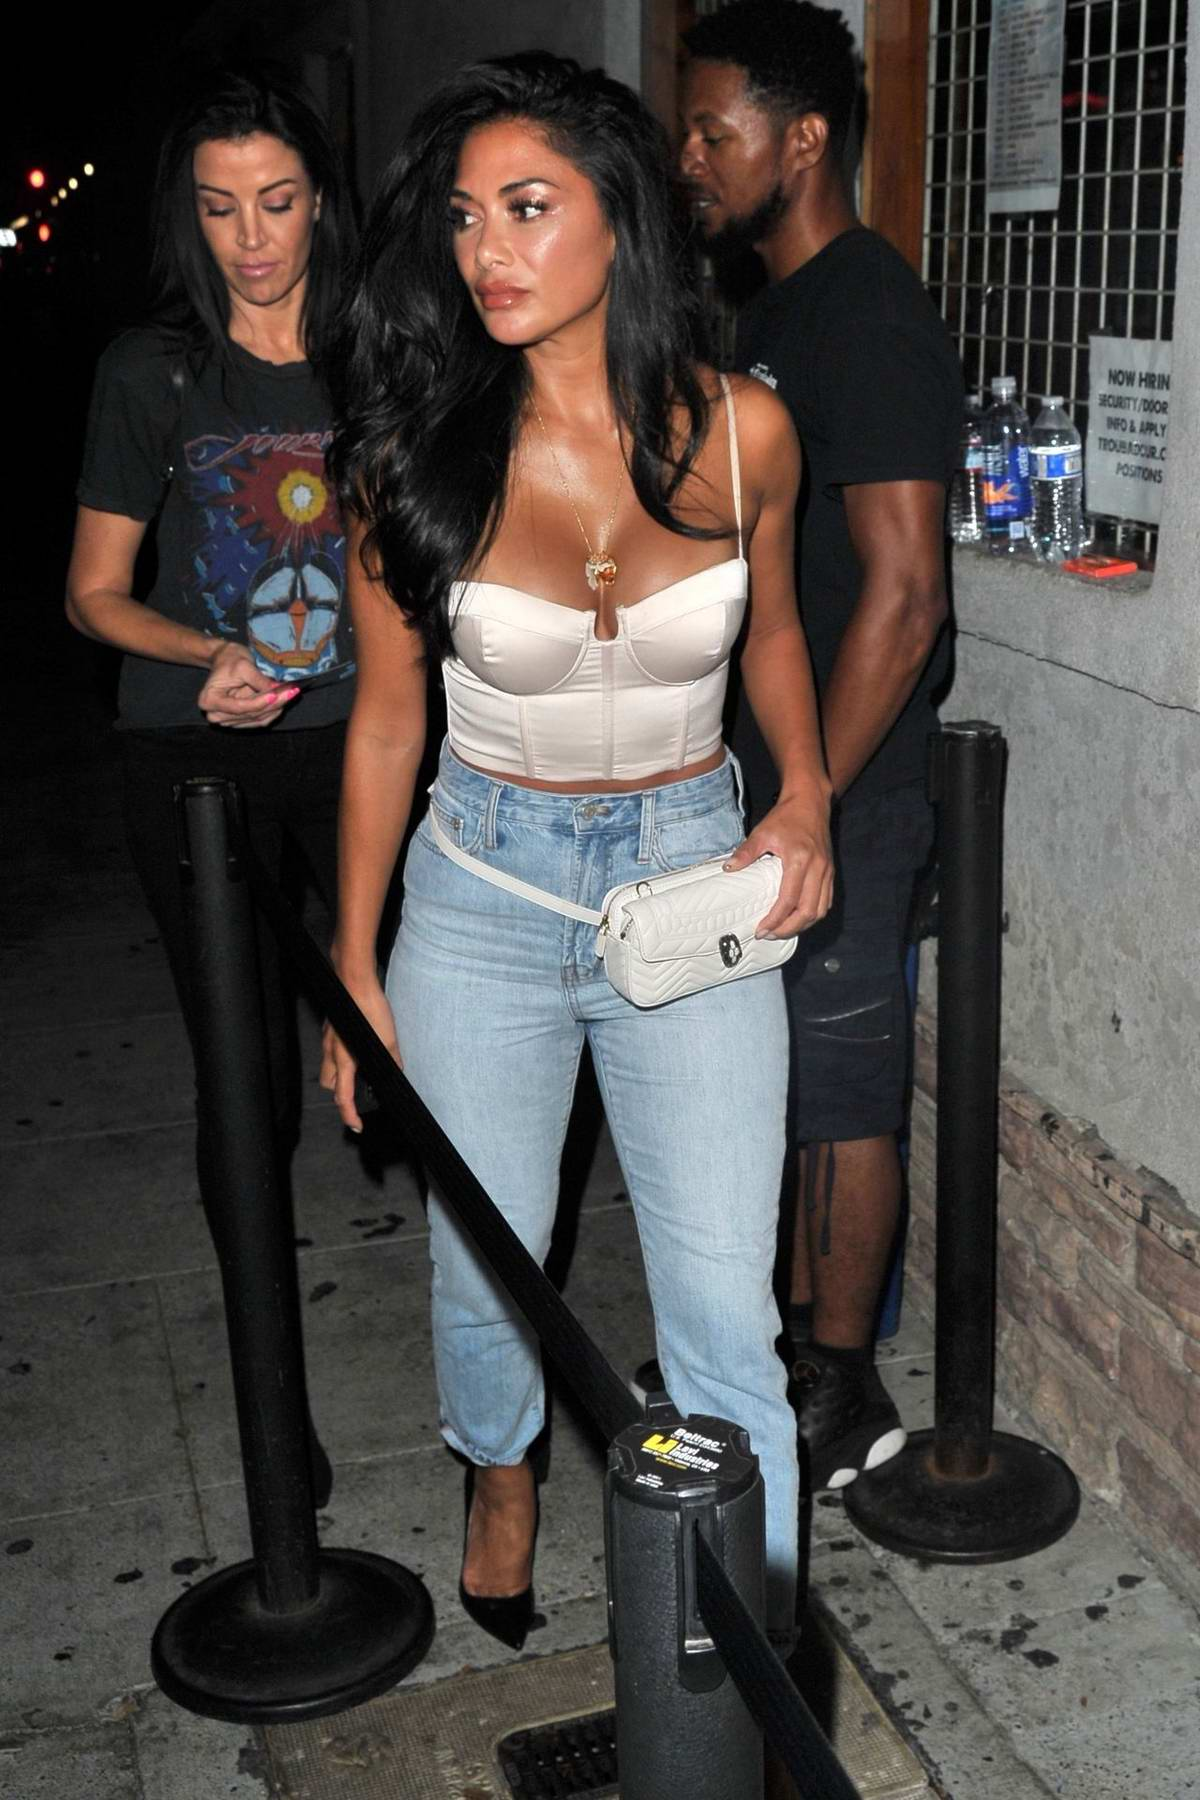 Nicole Scherzinger arrives to see James Arthur at the Troubadour in Los Angeles